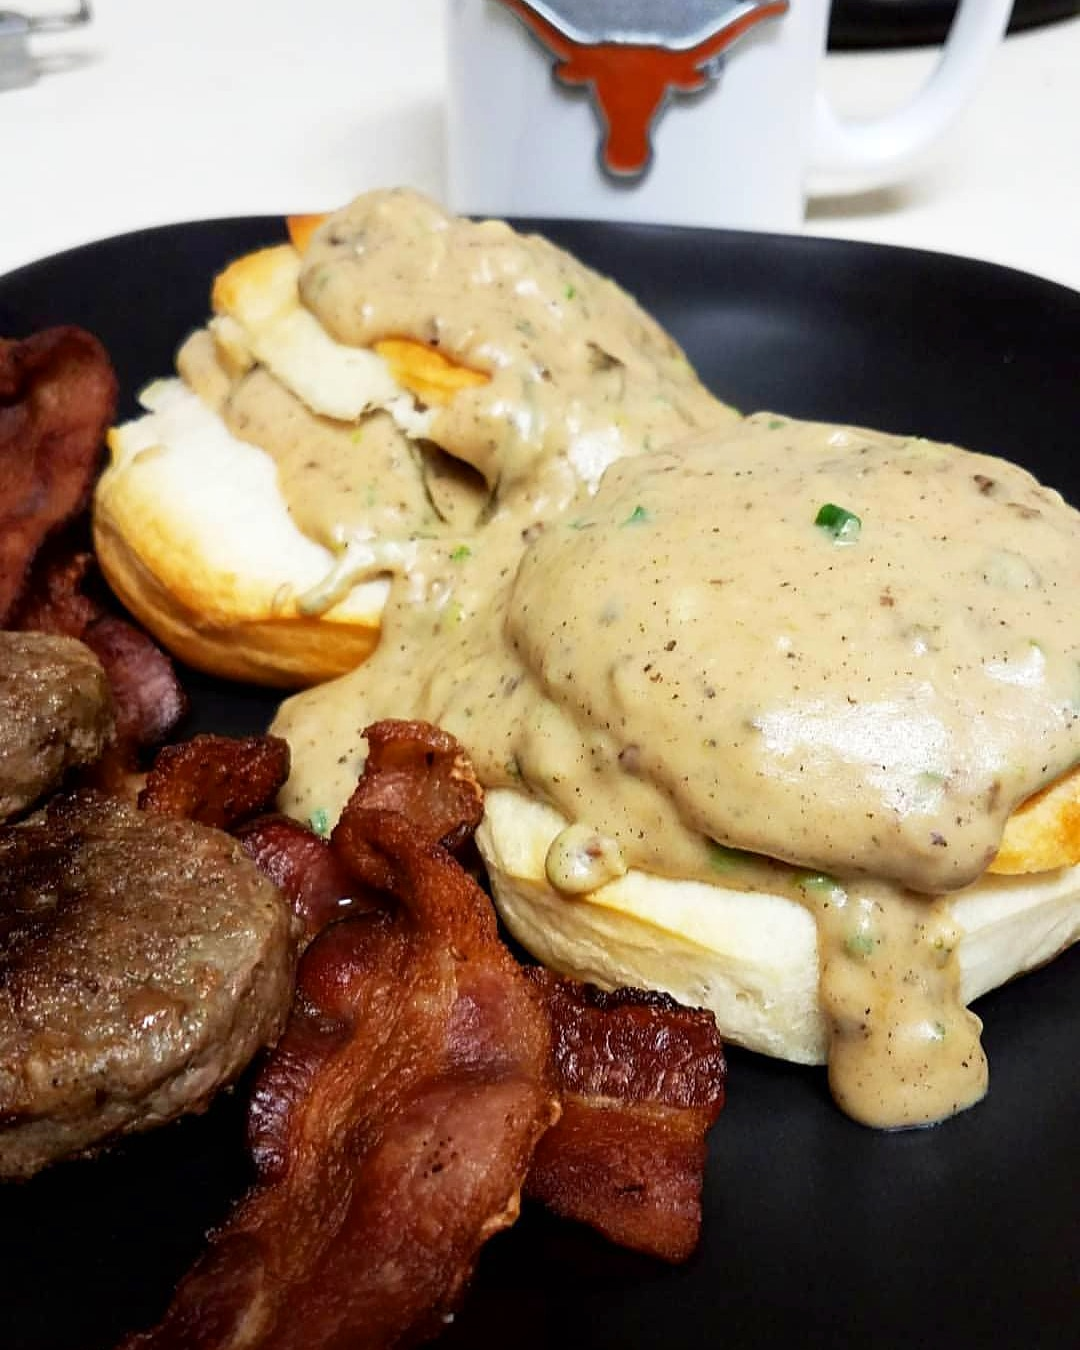 Bacon Gravy for Biscuits Da'v Emelio Castañuela